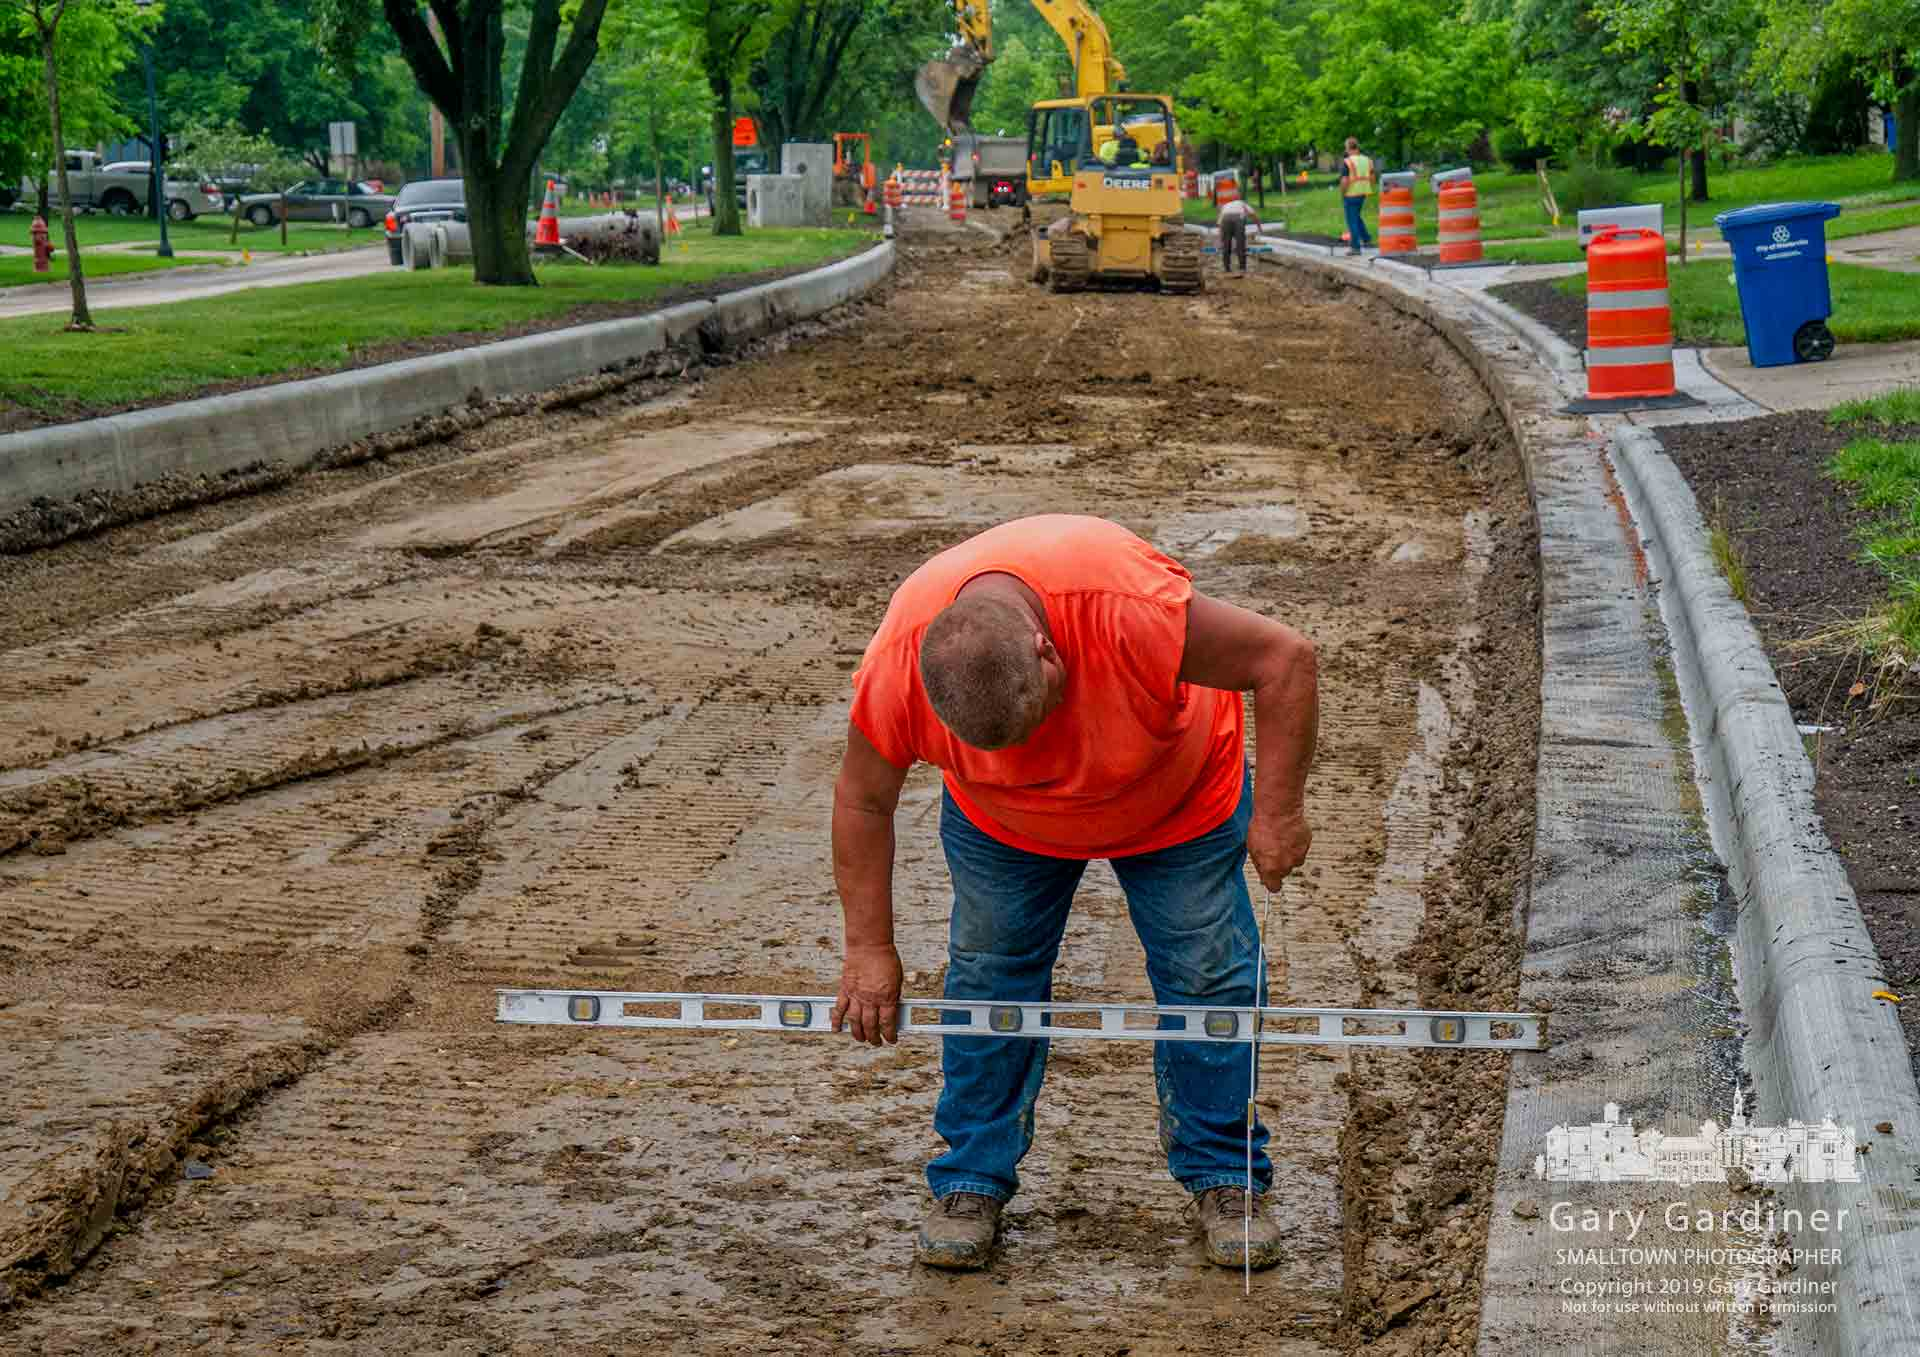 A concrete crew supervisor checks the depth below the gutters of Spring Road as the crew prepares to add a concrete and gravel underlay before laying a level of asphalt to complete a section of the street near Schrock. My Final Photo for June 19, 2019.